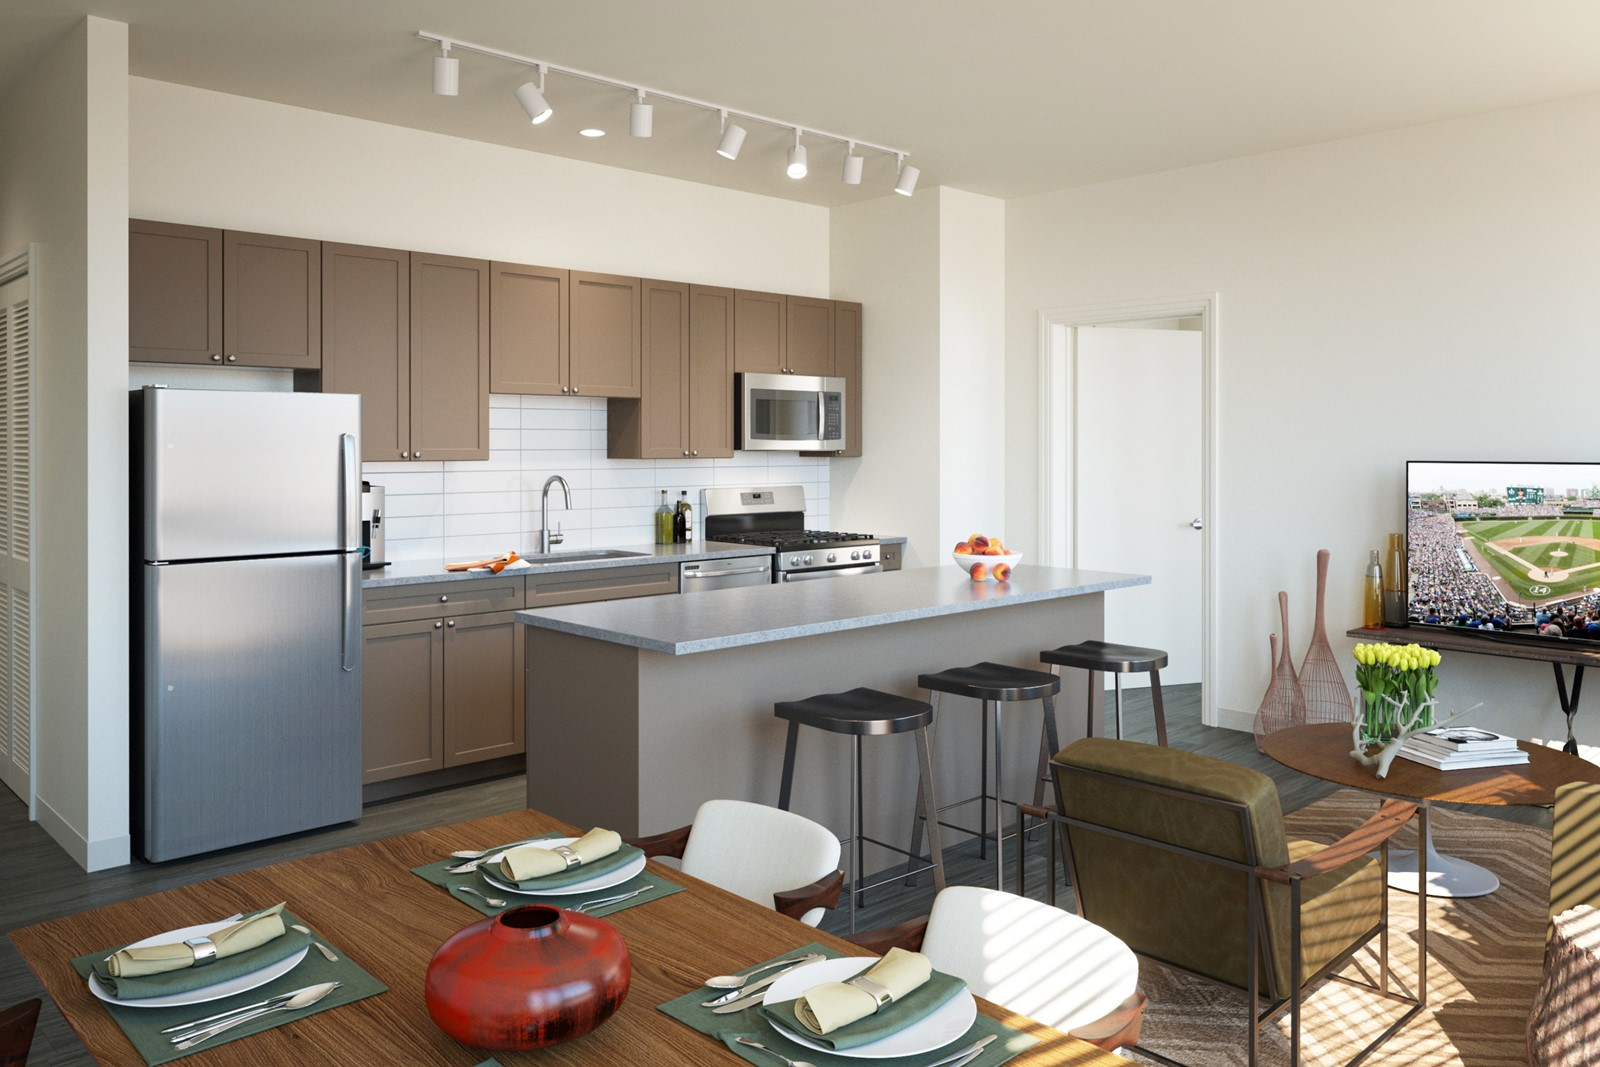 Linkt 830 N Milwaukee Ave Is A New Boutique Apartment Building In Transit Friendly Pedestrian Location The Fun River West Neighborhood